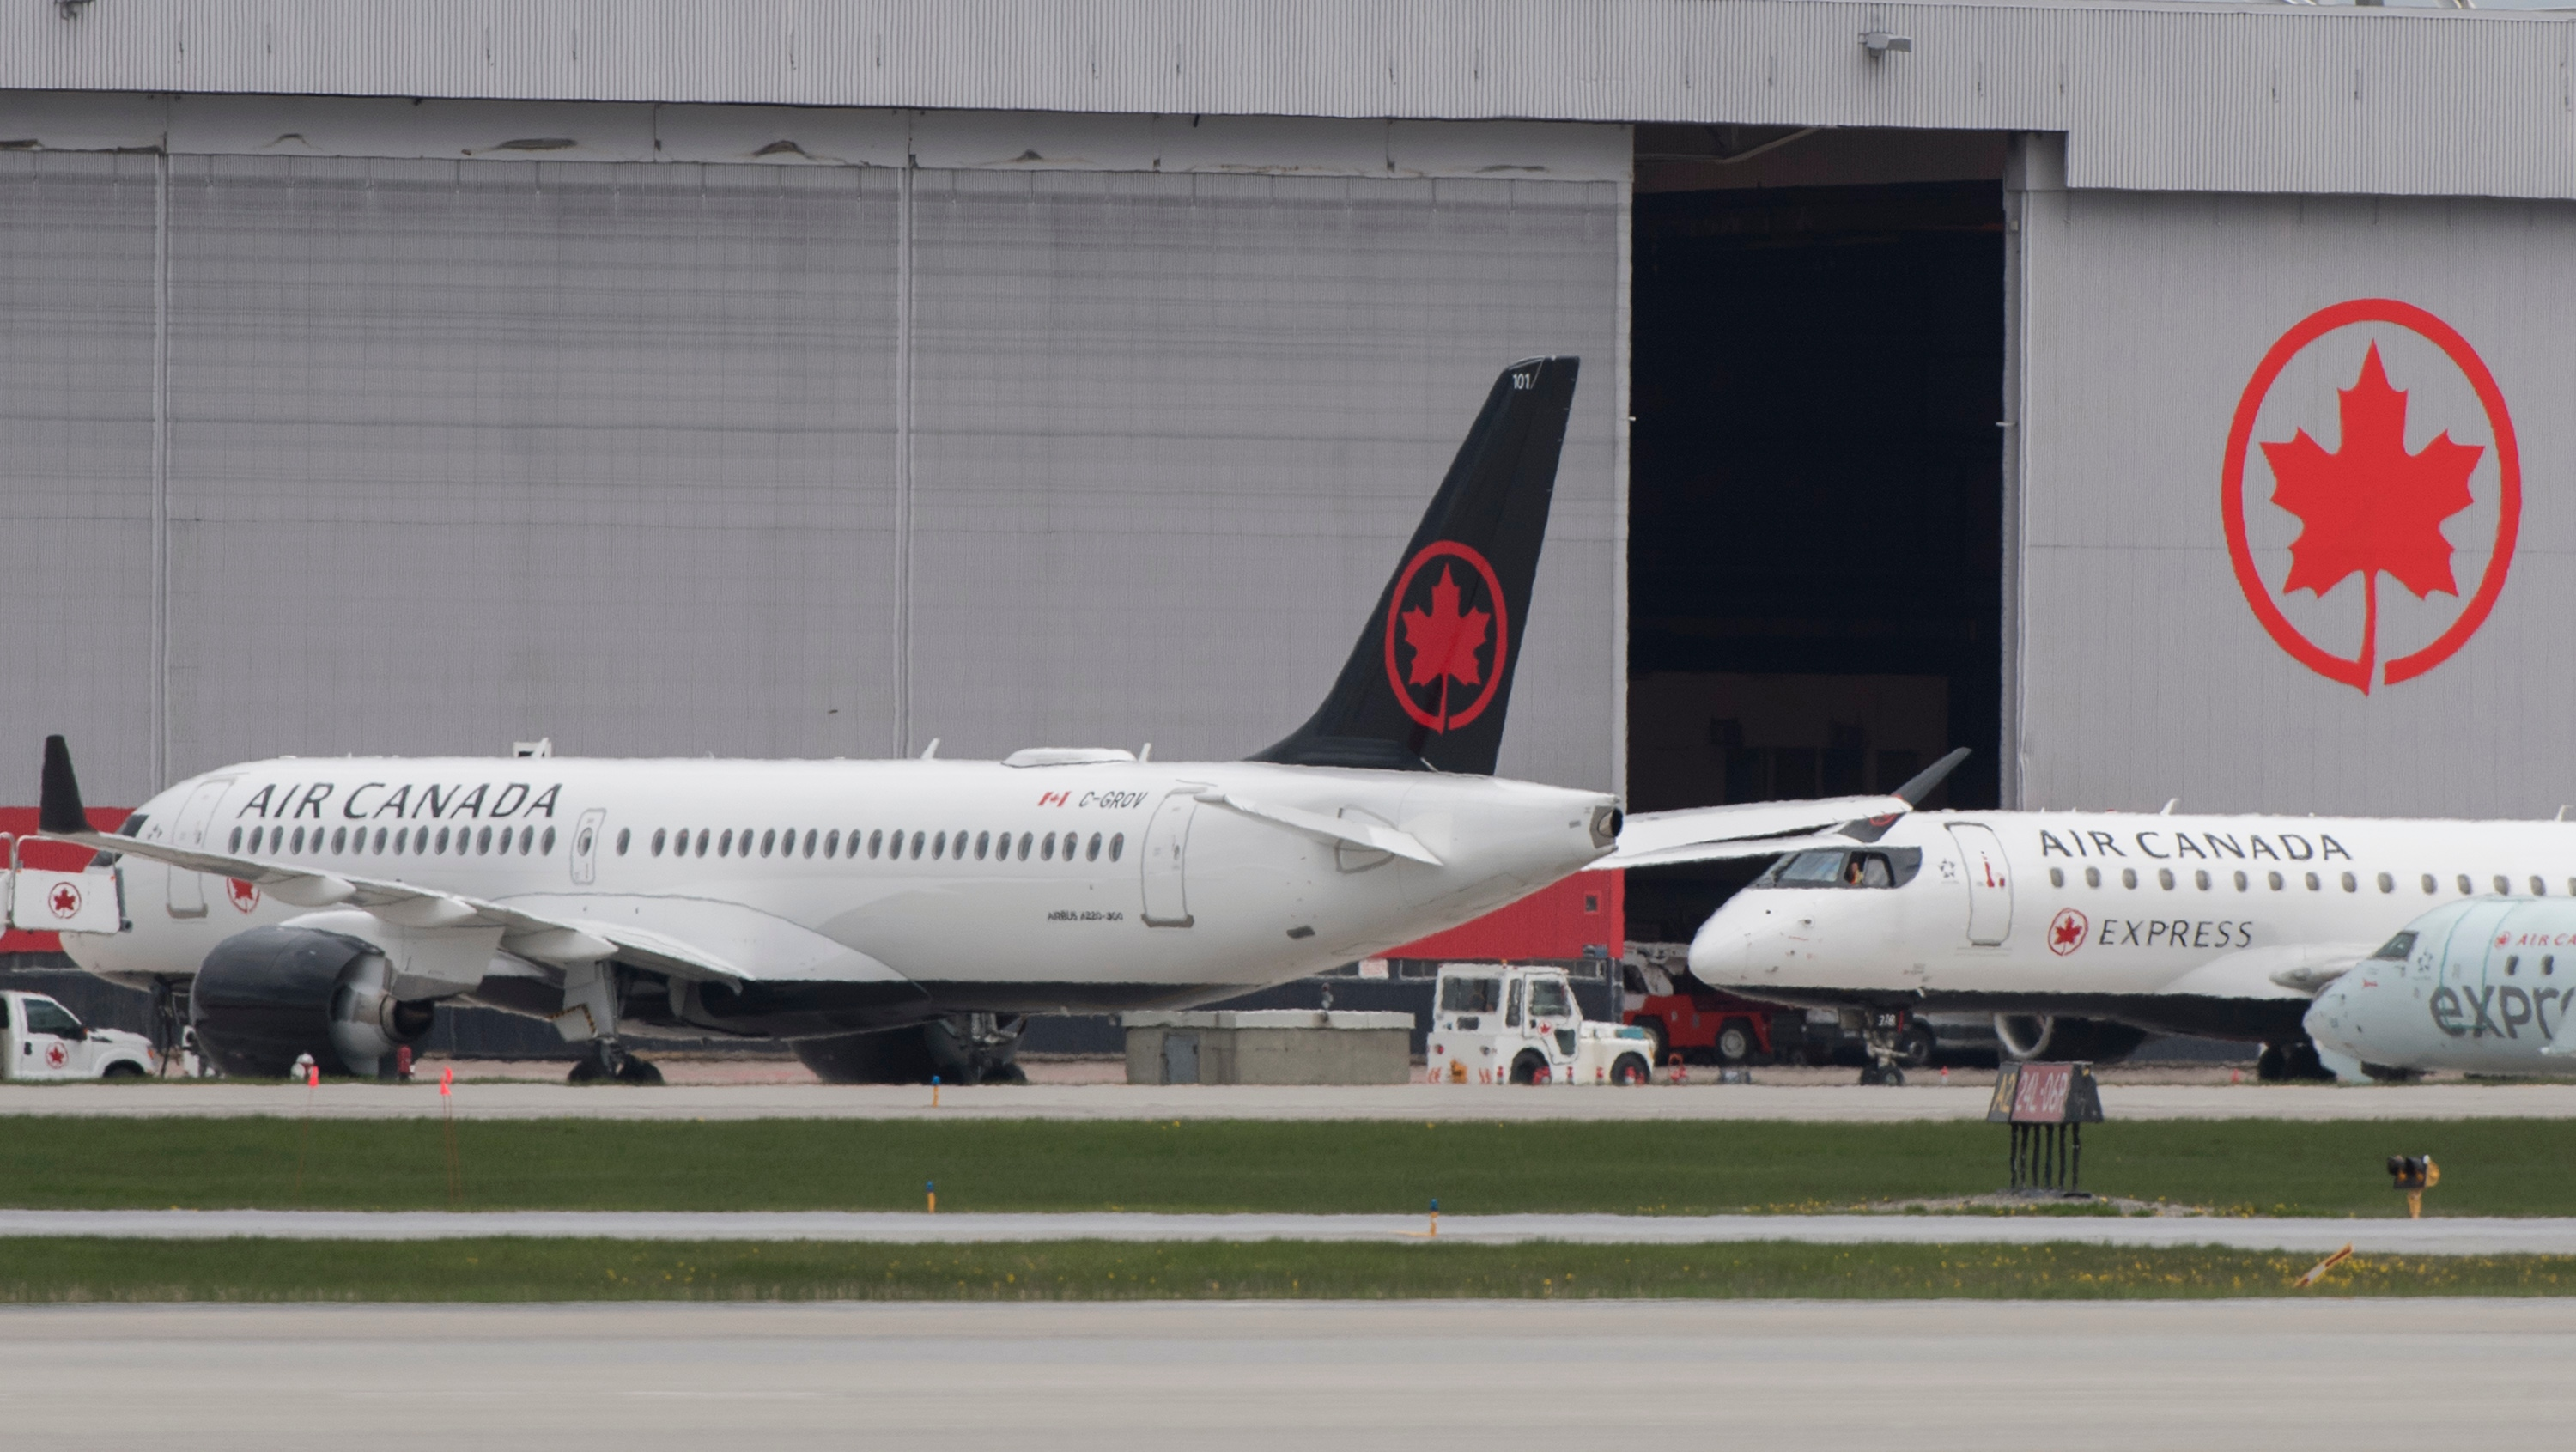 Air Canada Revenues Declined Nearly 90% in Q2 2020